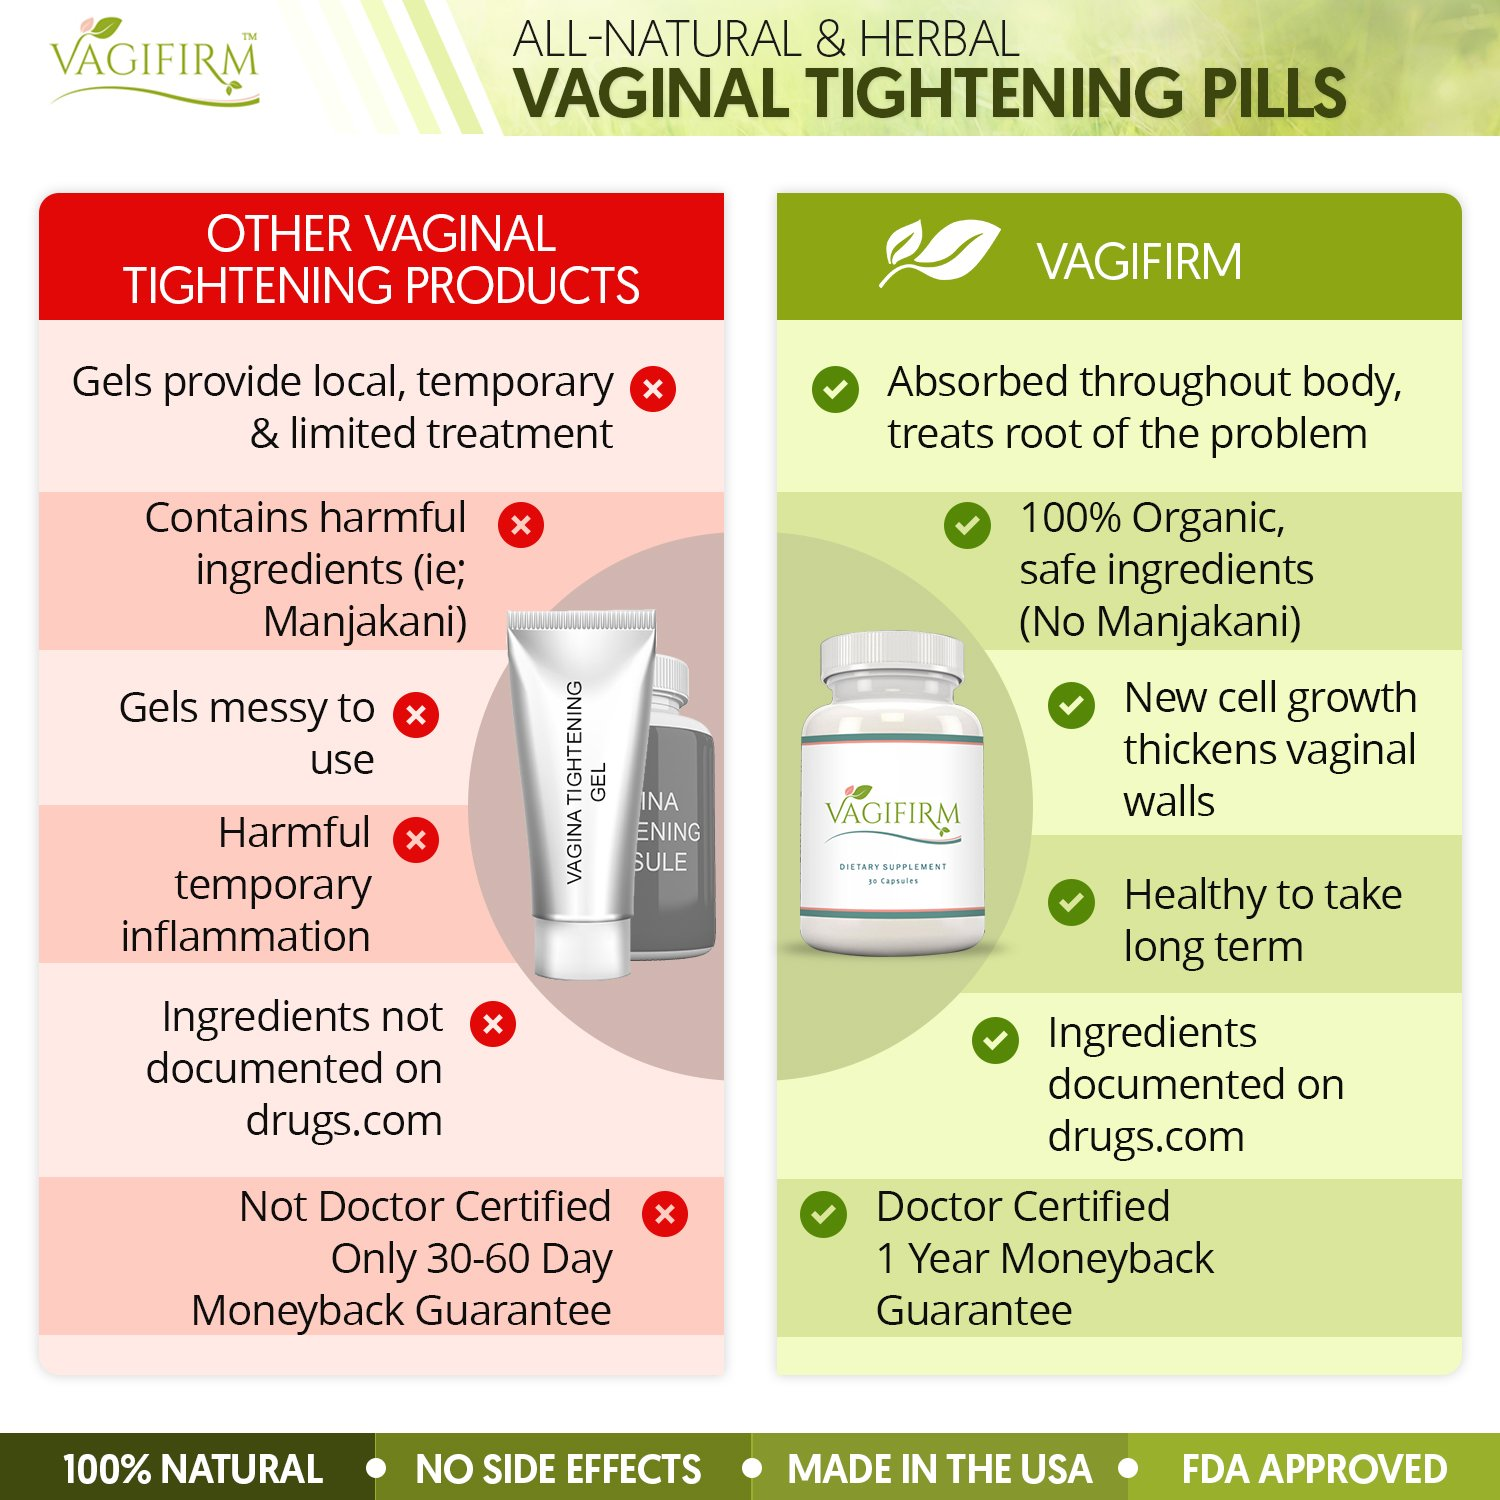 Amazon.com: Vagifirm Vaginal Tightening Pills - All Natural Herbal  Supplement. (1 Month Bottle Supply): Health & Personal Care